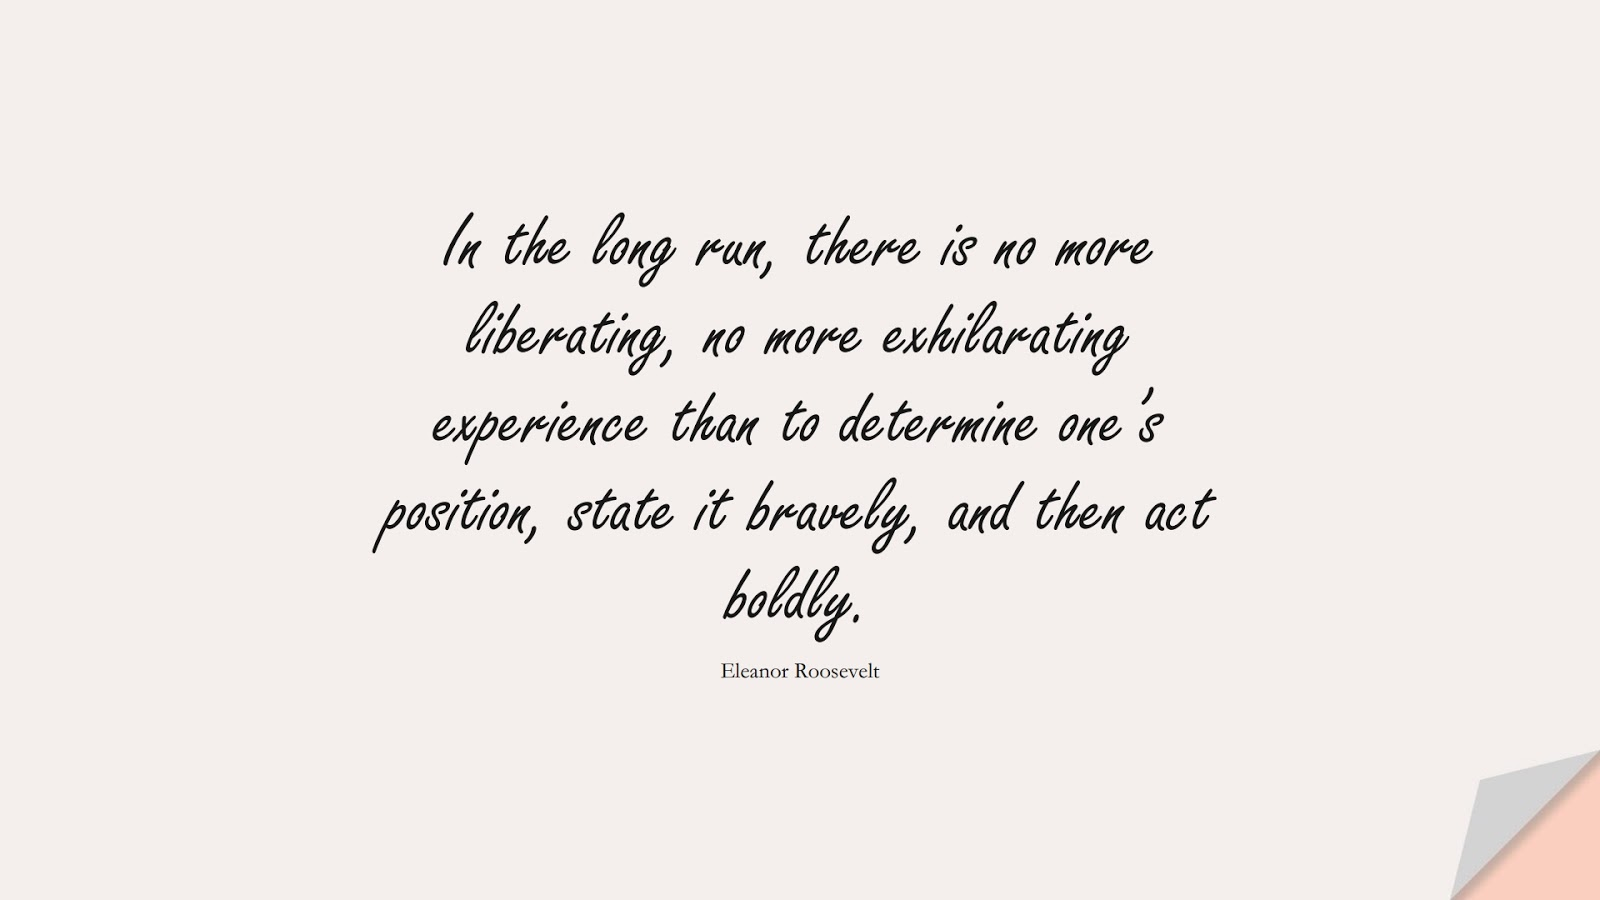 In the long run, there is no more liberating, no more exhilarating experience than to determine one's position, state it bravely, and then act boldly. (Eleanor Roosevelt);  #BeingStrongQuotes